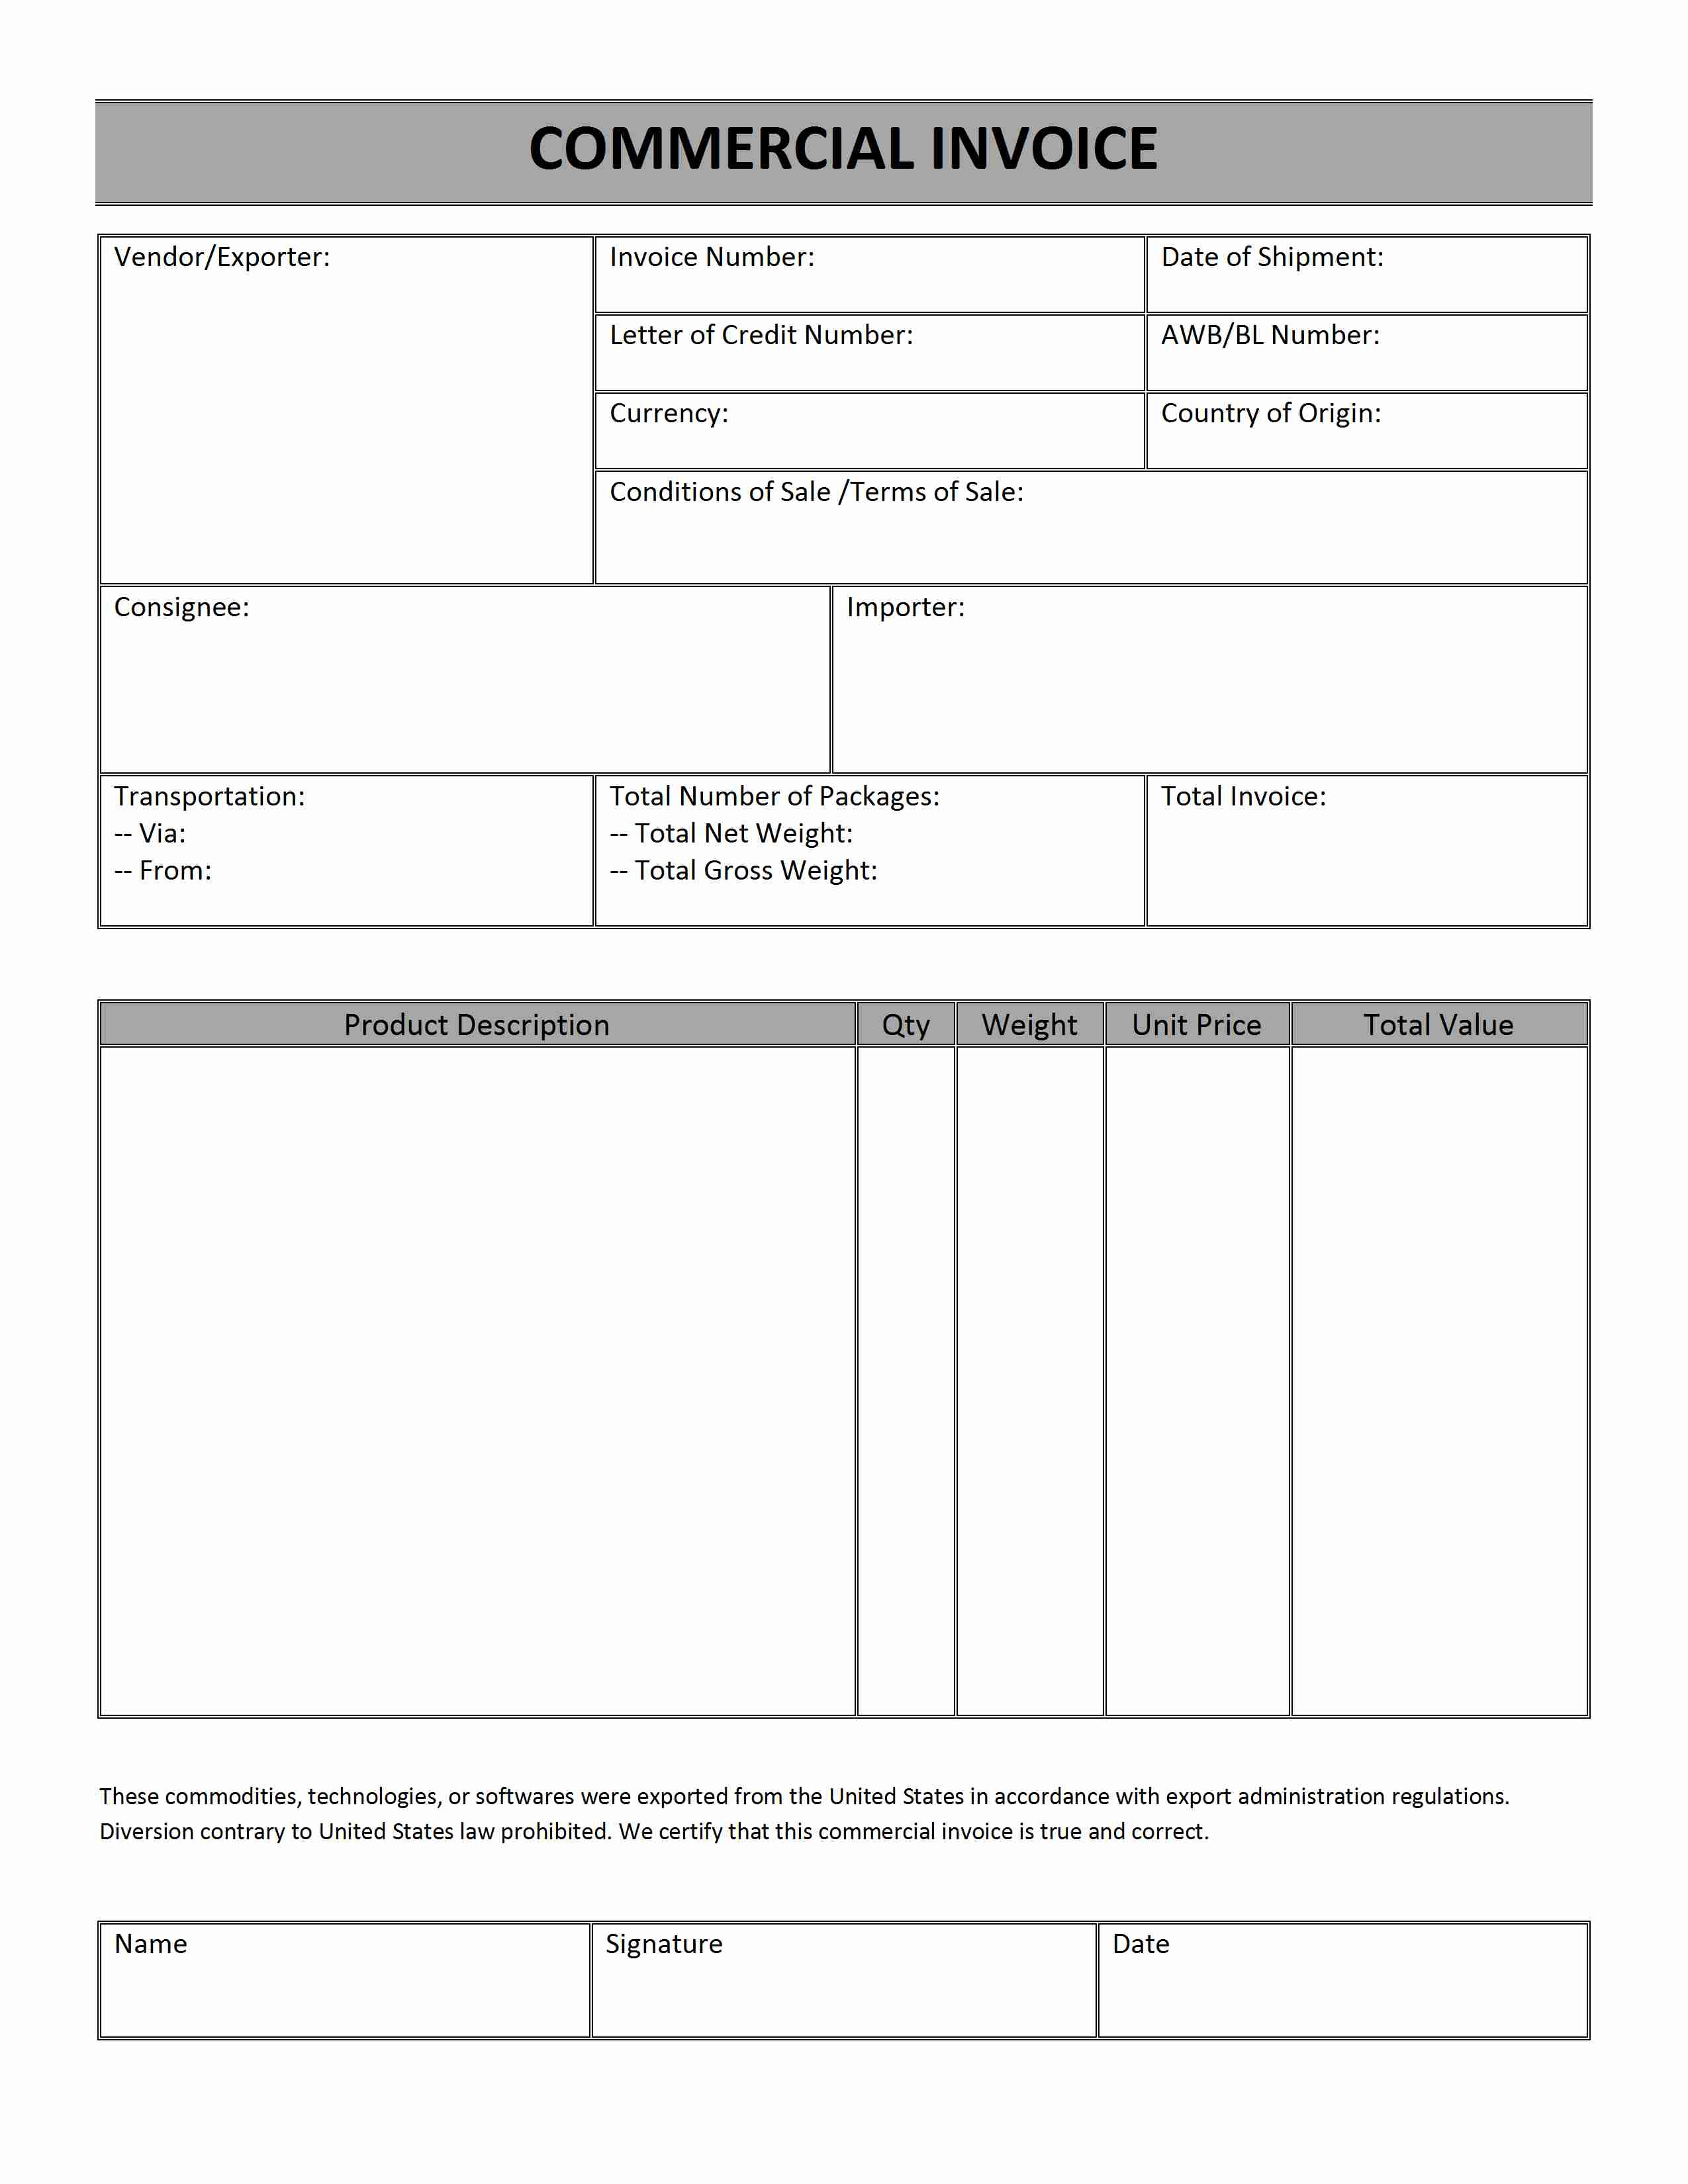 Reliefworkersus  Splendid Printable Sales Invoice Simple Invoice Form Free Invoice  With Extraordinary Printable Receipt Free  Free Printable Raffle Tickets  Receipt   Printable With Appealing Against Proforma Invoice Also Invoice In Access In Addition What Is Meant By Proforma Invoice And How To Invoice As A Sole Trader As Well As On Receipt Of Invoice Additionally Excel Invoices Templates Free From Happytomco With Reliefworkersus  Extraordinary Printable Sales Invoice Simple Invoice Form Free Invoice  With Appealing Printable Receipt Free  Free Printable Raffle Tickets  Receipt   Printable And Splendid Against Proforma Invoice Also Invoice In Access In Addition What Is Meant By Proforma Invoice From Happytomco